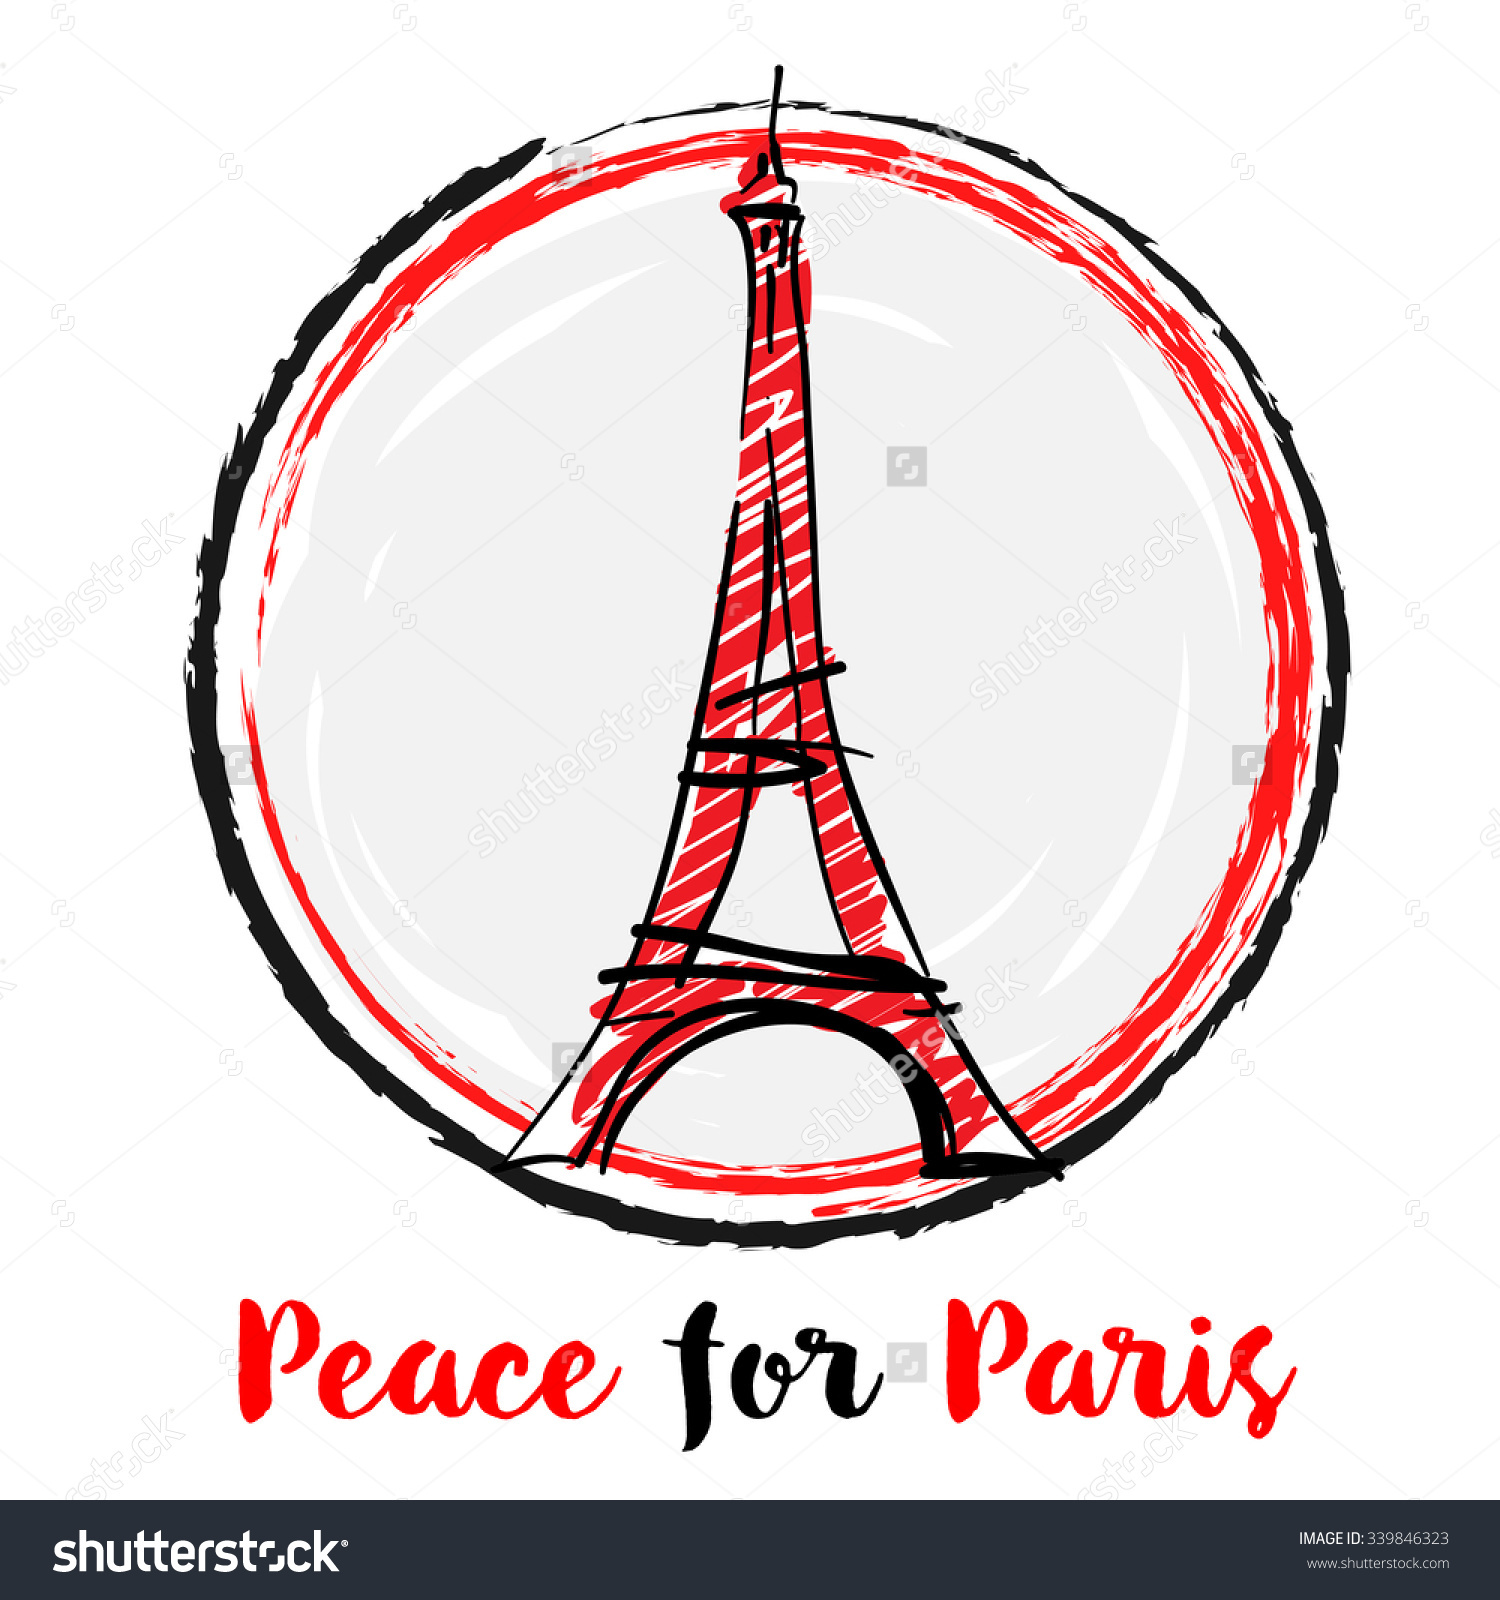 Clipart of paris attack.